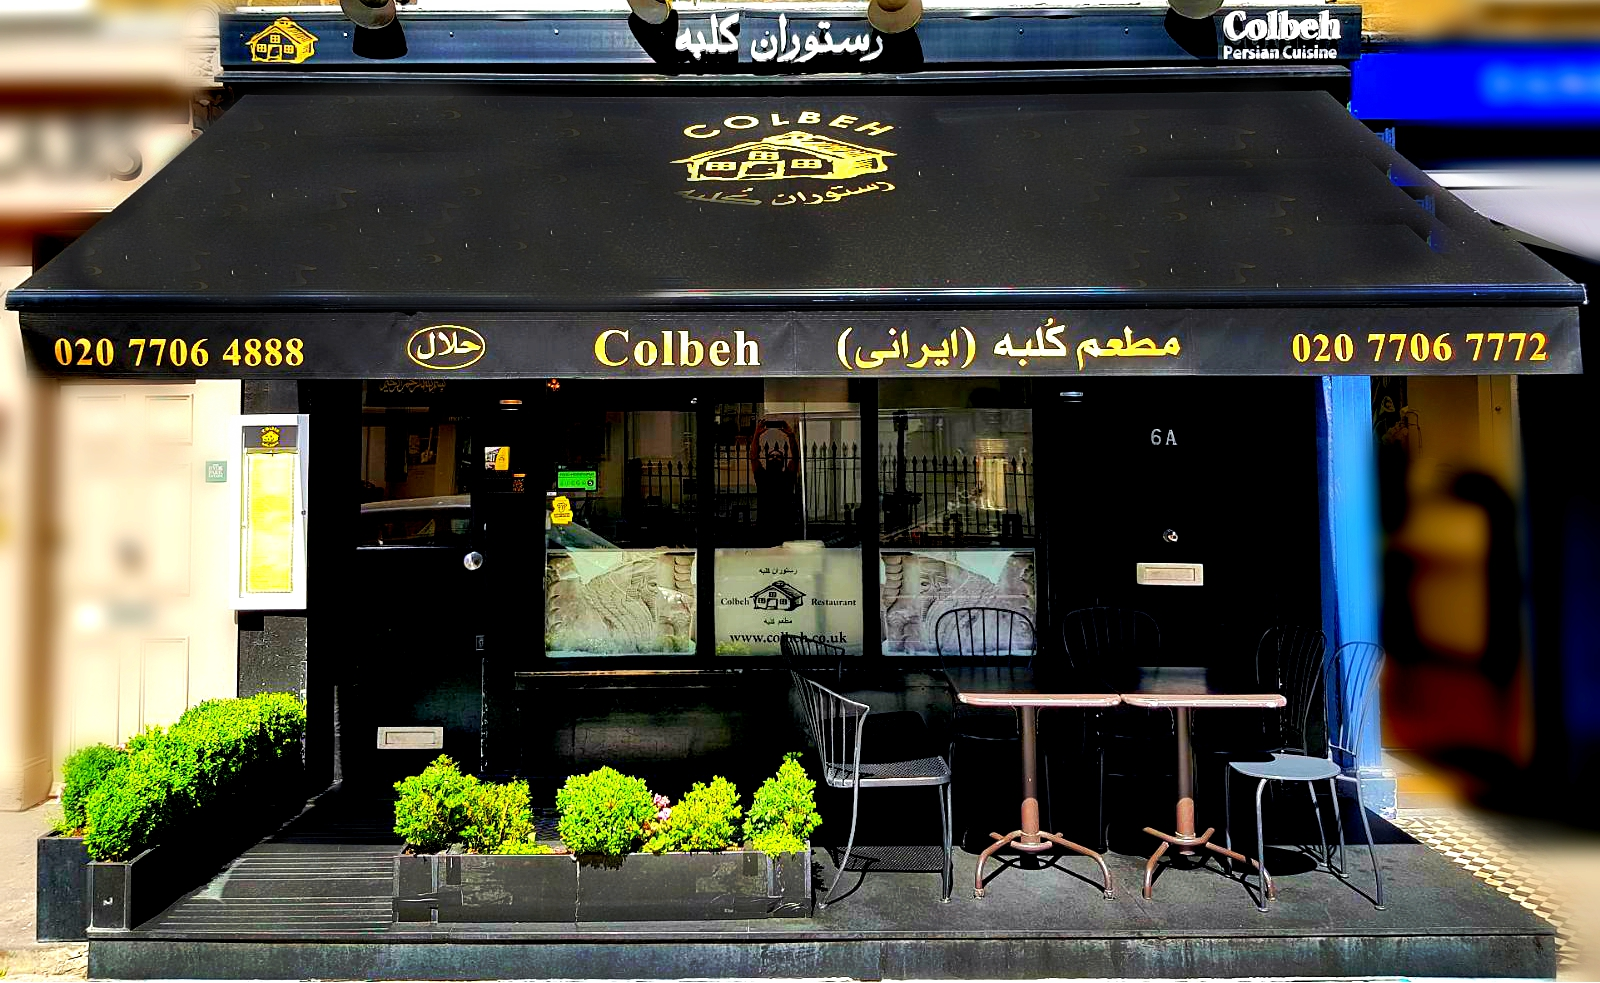 Colbeh Restaurant Best Food